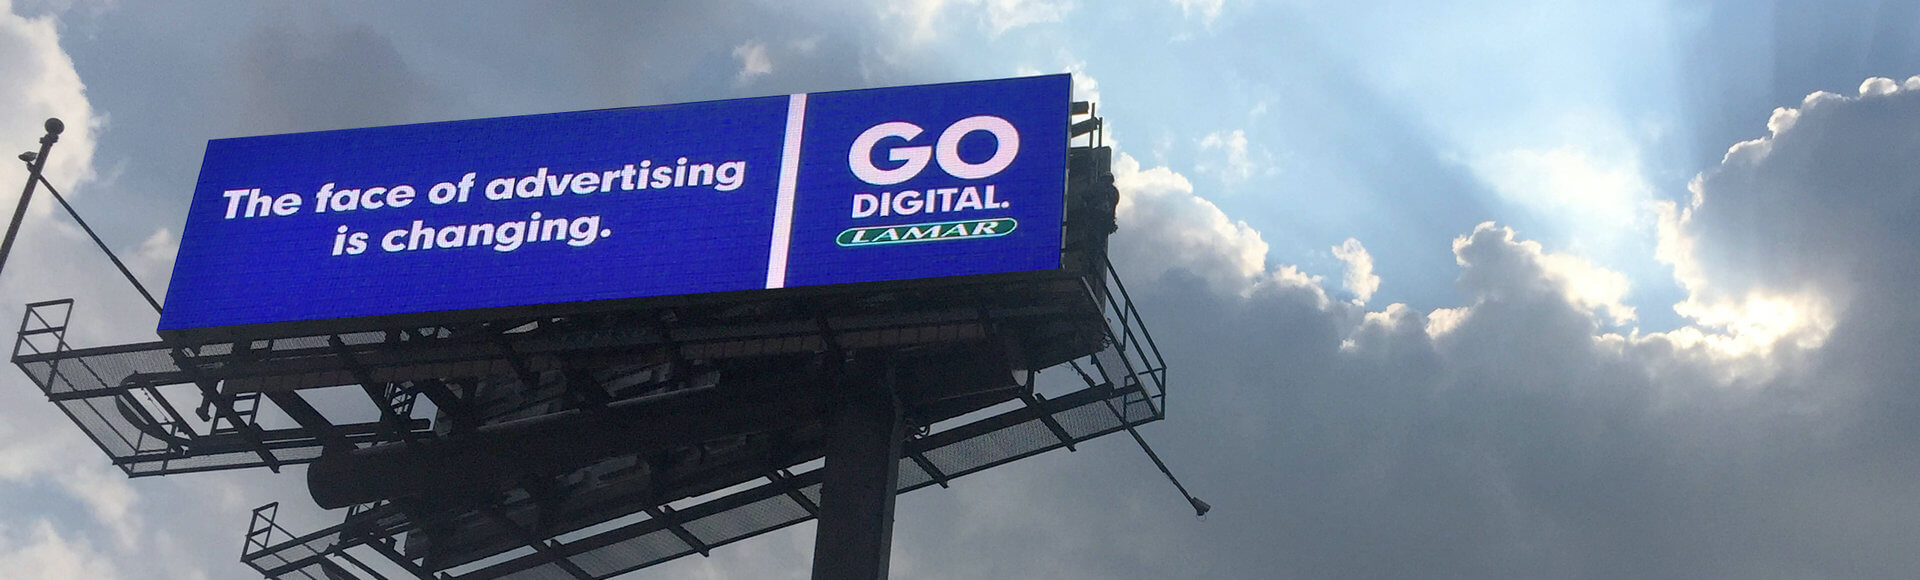 Header Digital Billboard 1920X580